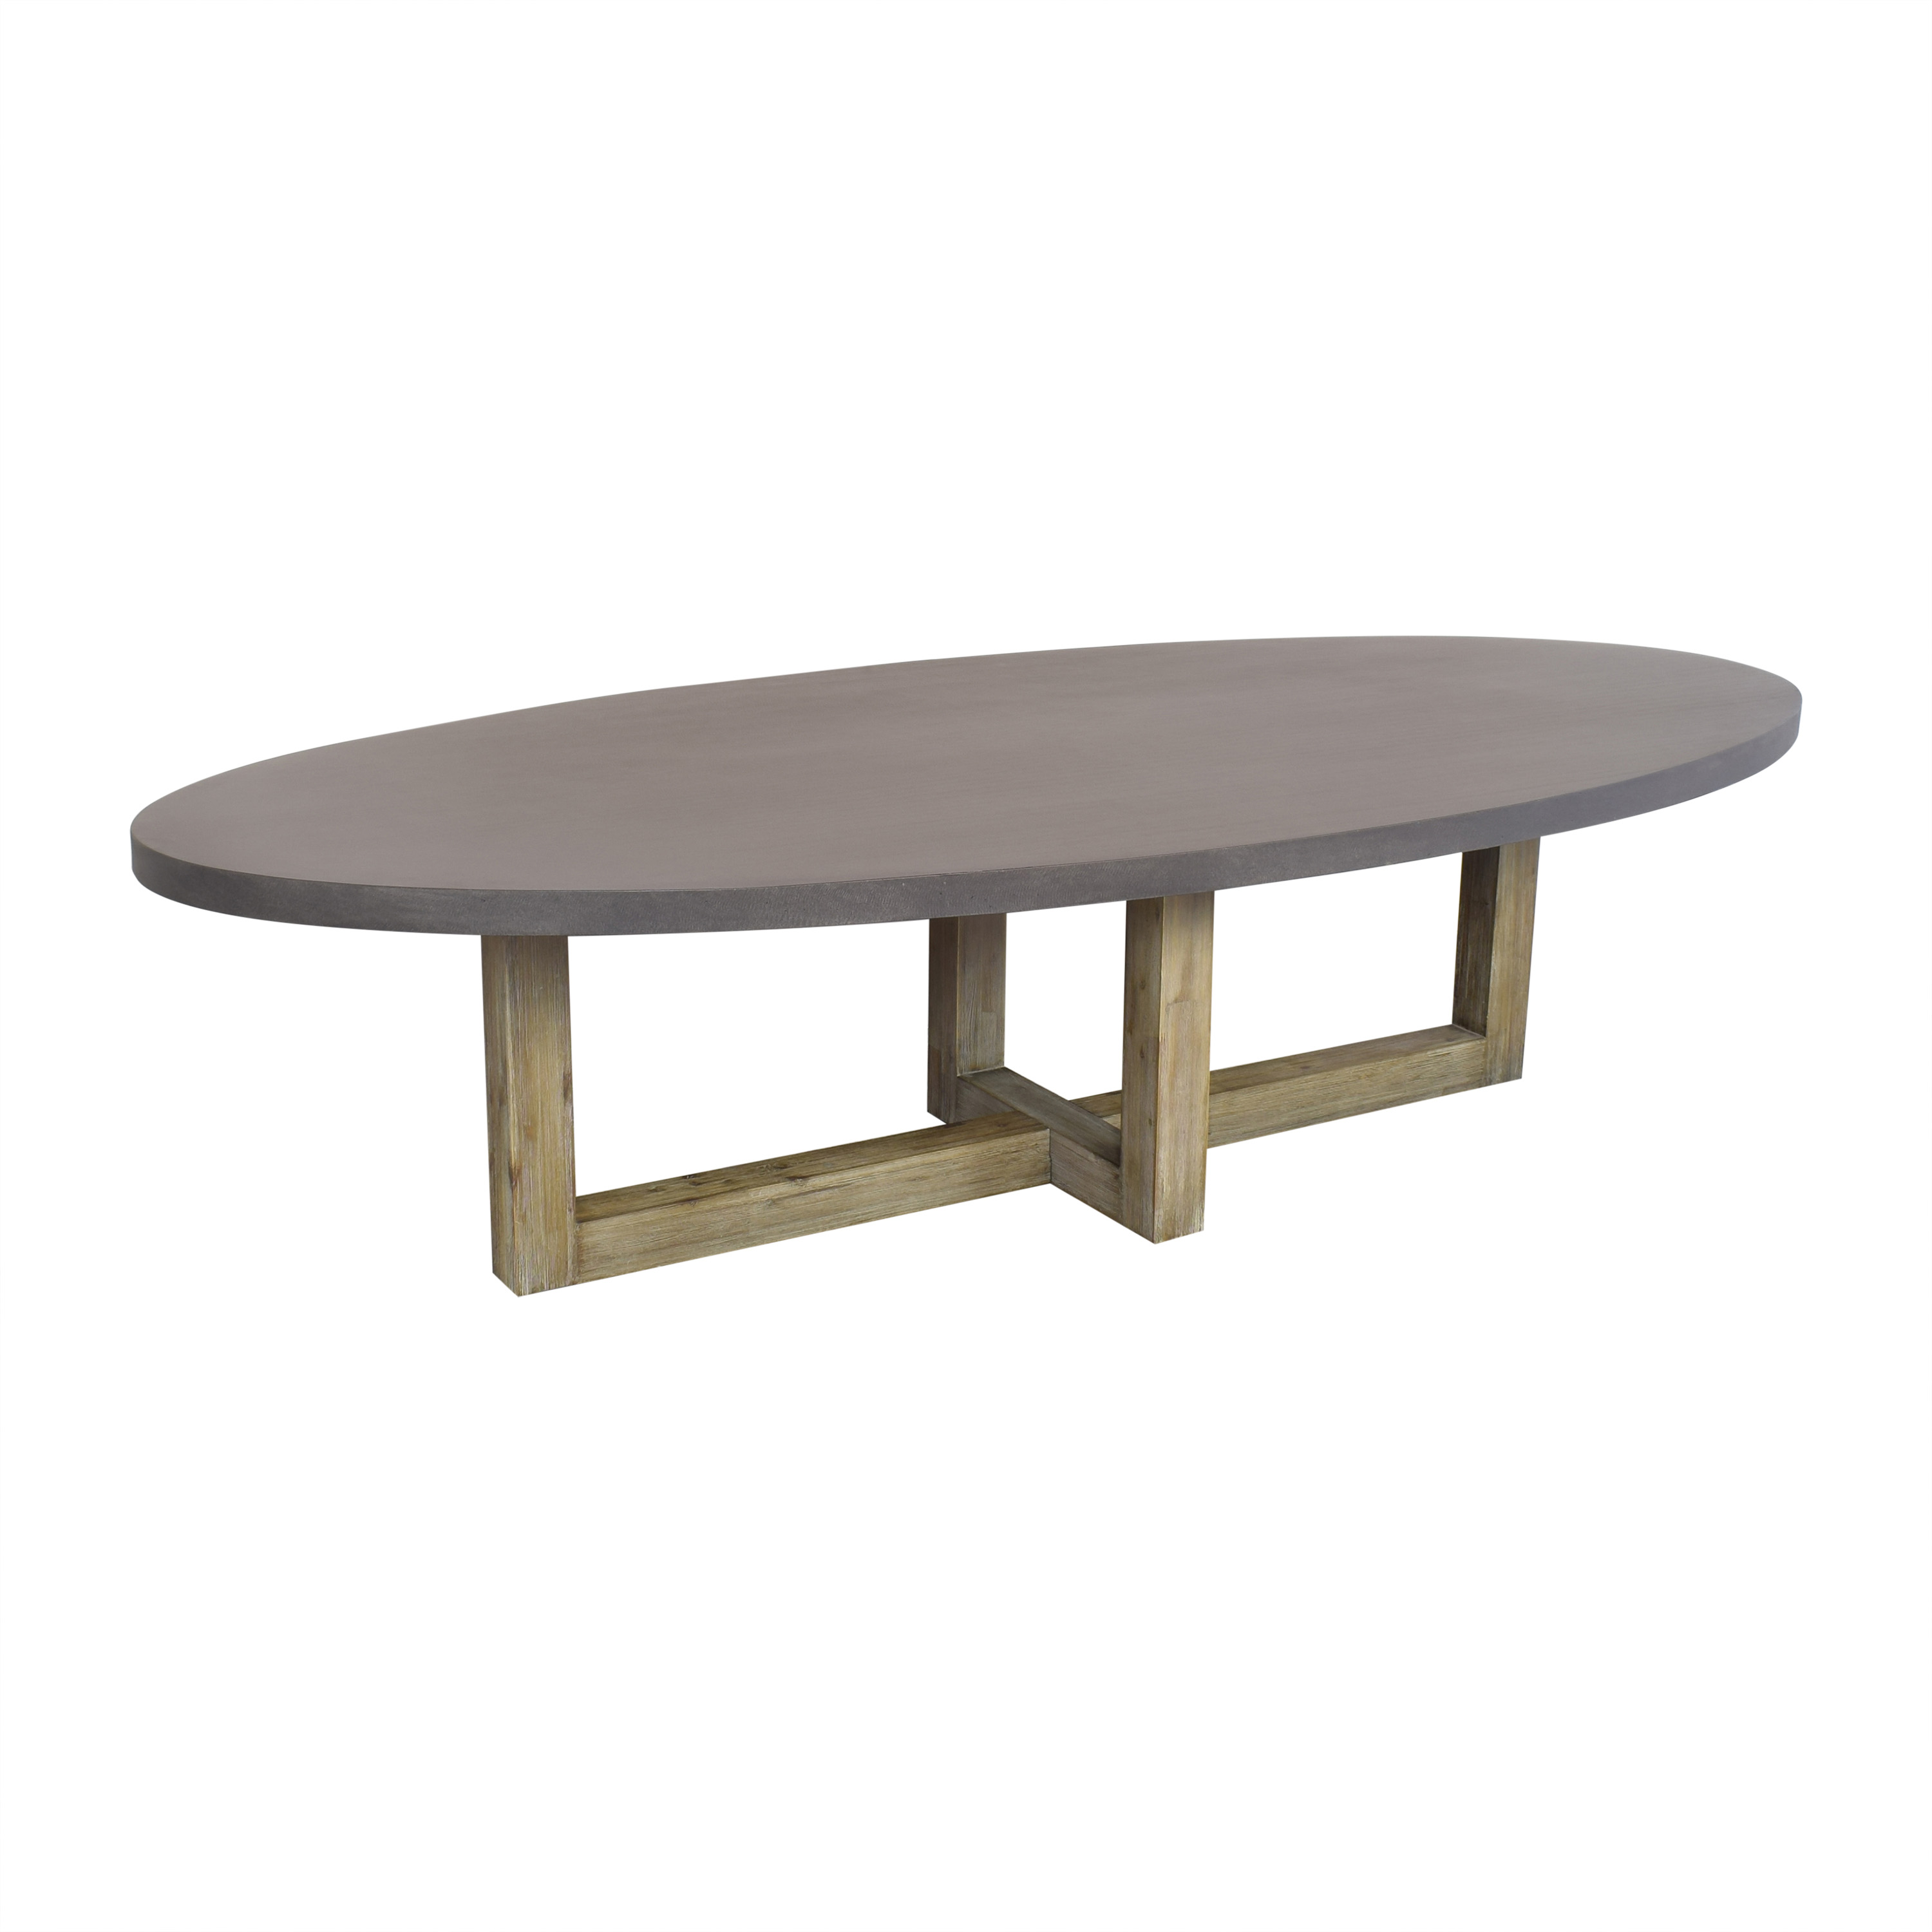 Crate & Barrel Crate & Barrel Woodward Dining Table Dinner Tables